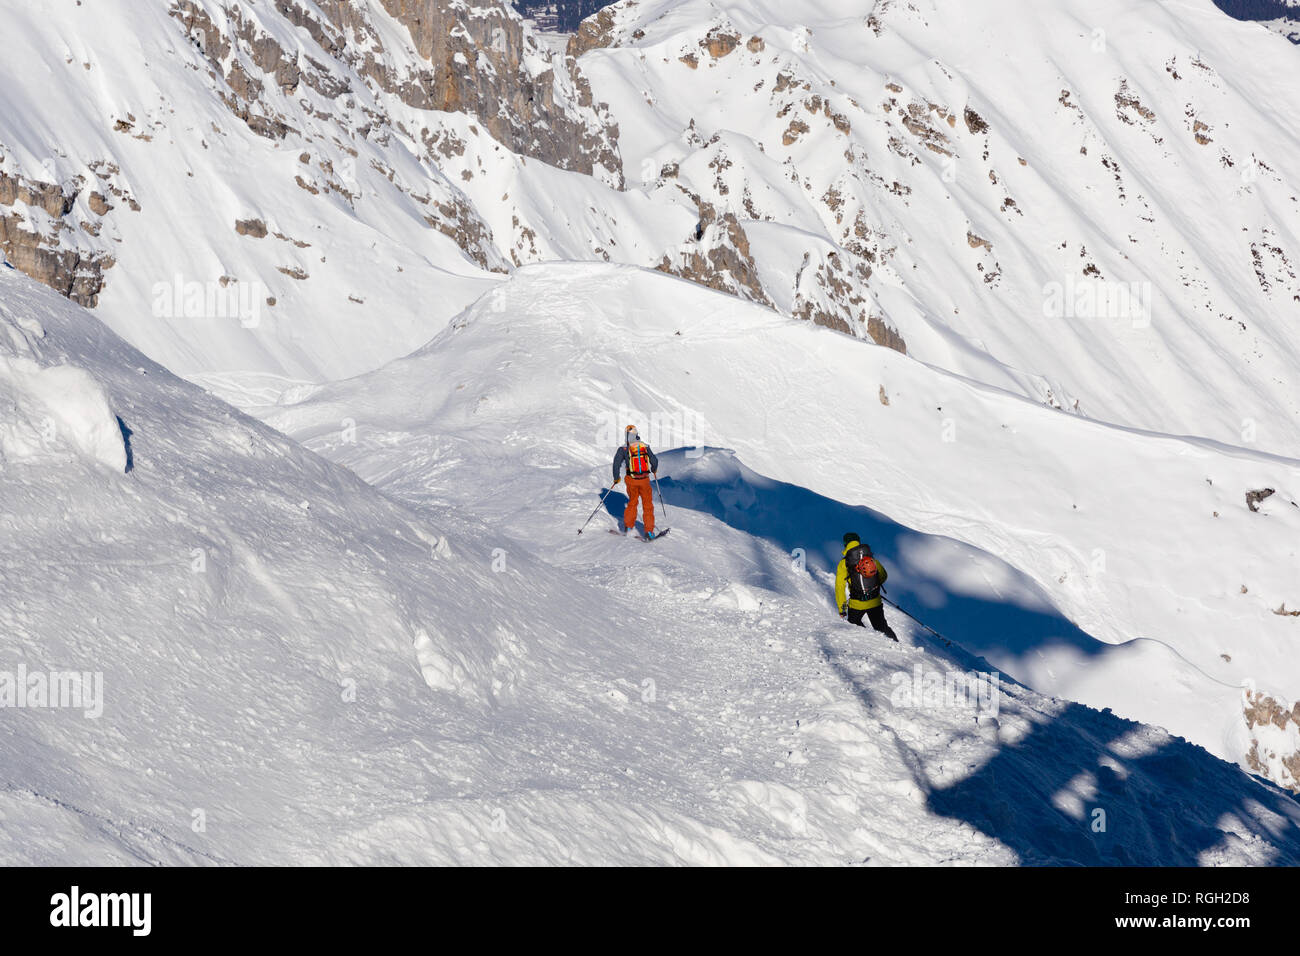 Skiing, Skier, Free ride in fresh powder snow - Man with skis climbs to the top - Stock Image